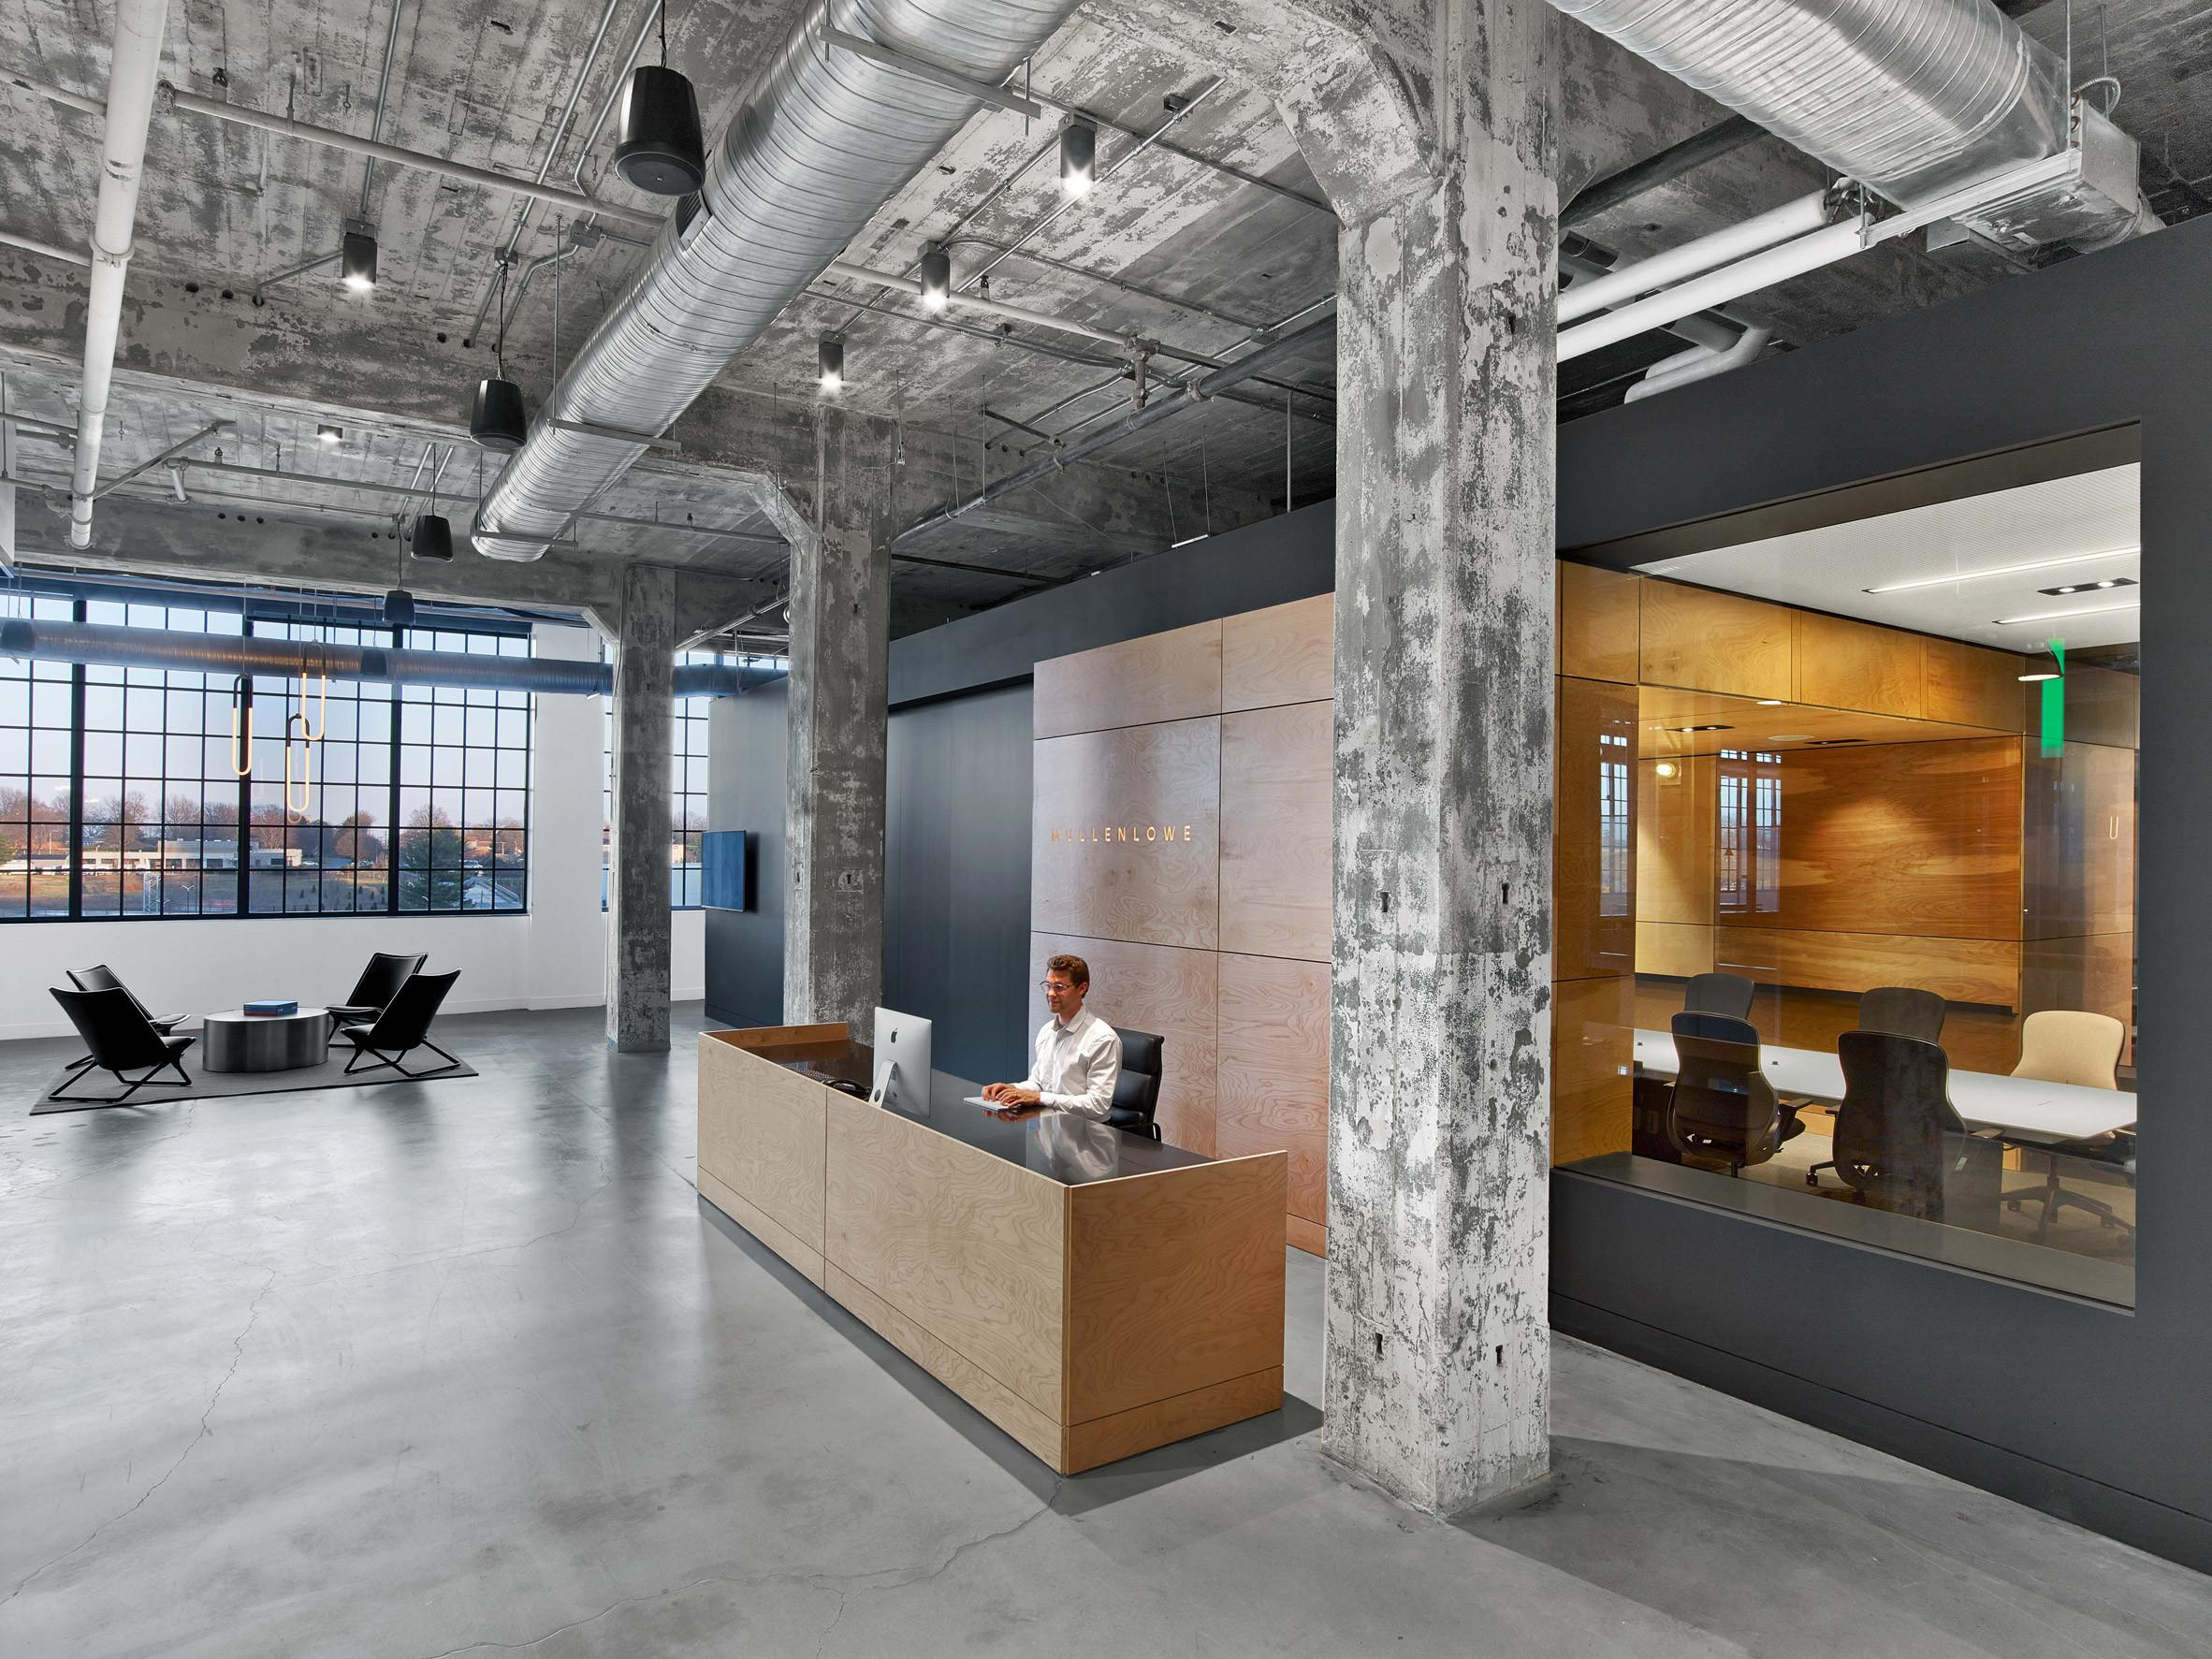 Tpg Architecture Adapts Tobacco Factory Into Agency